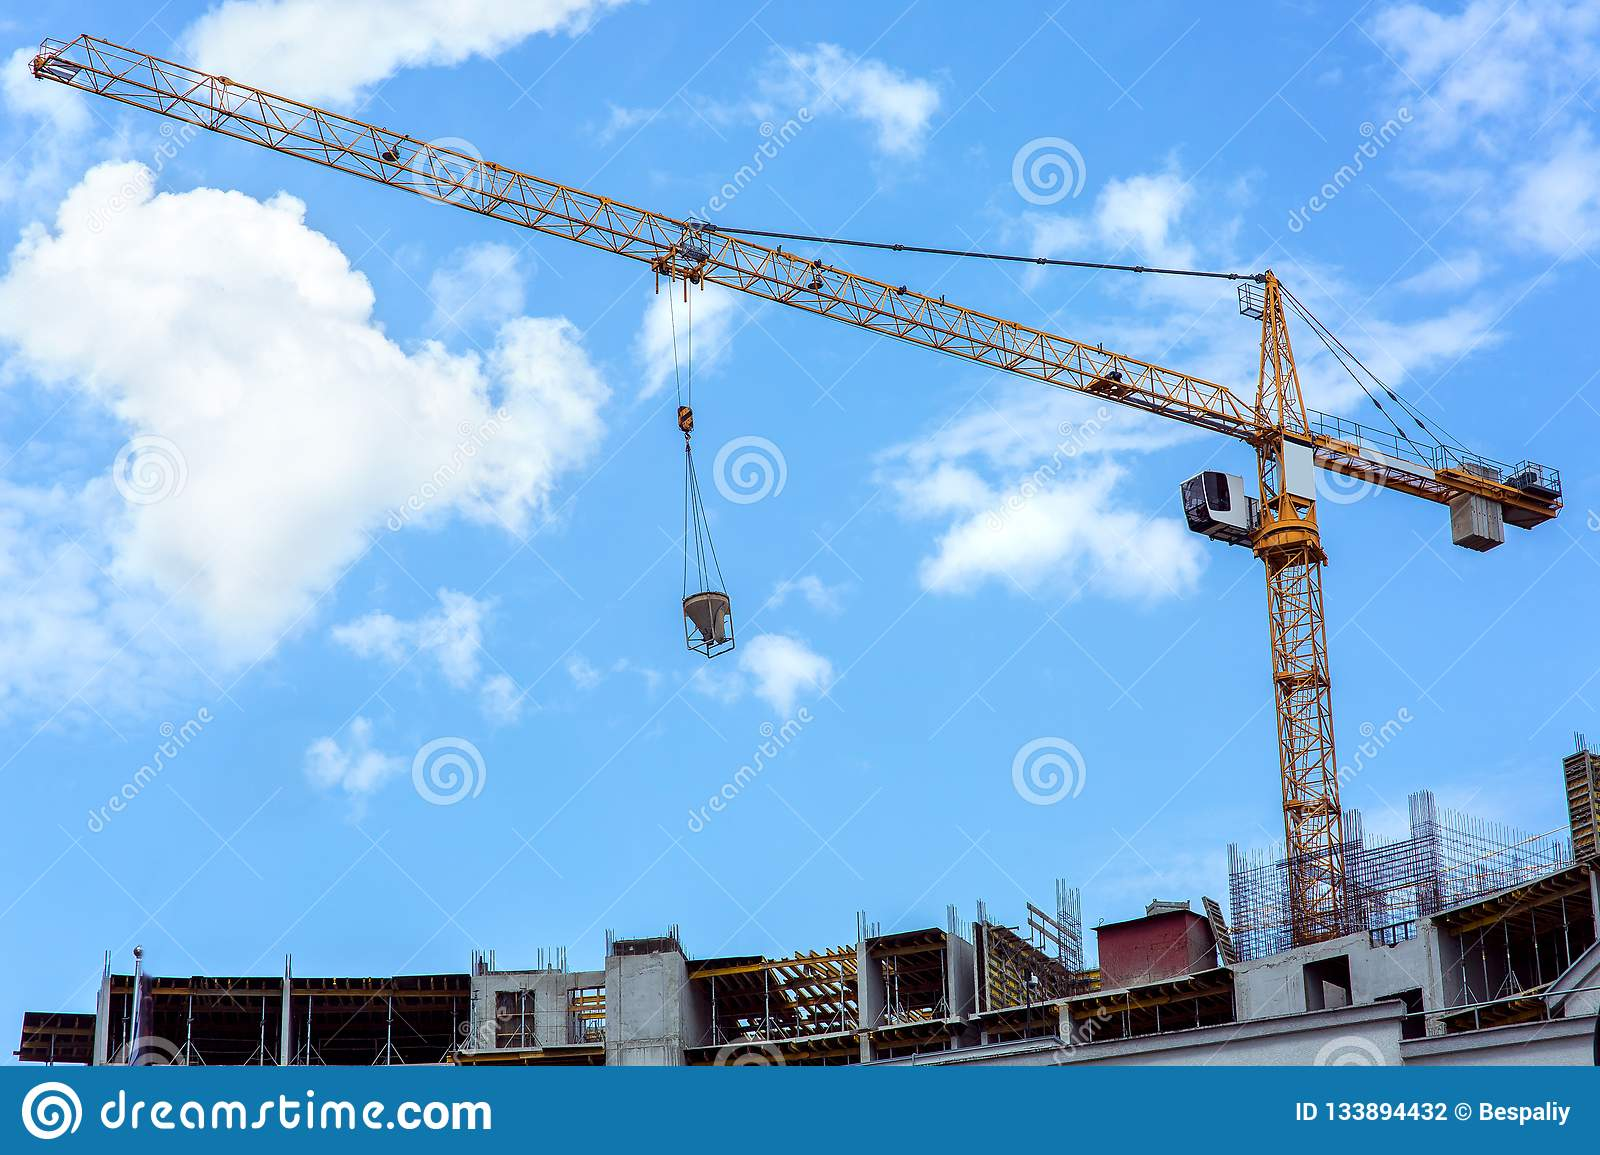 The Tower Crane Lifts The Tank With Concrete  Stock Photo